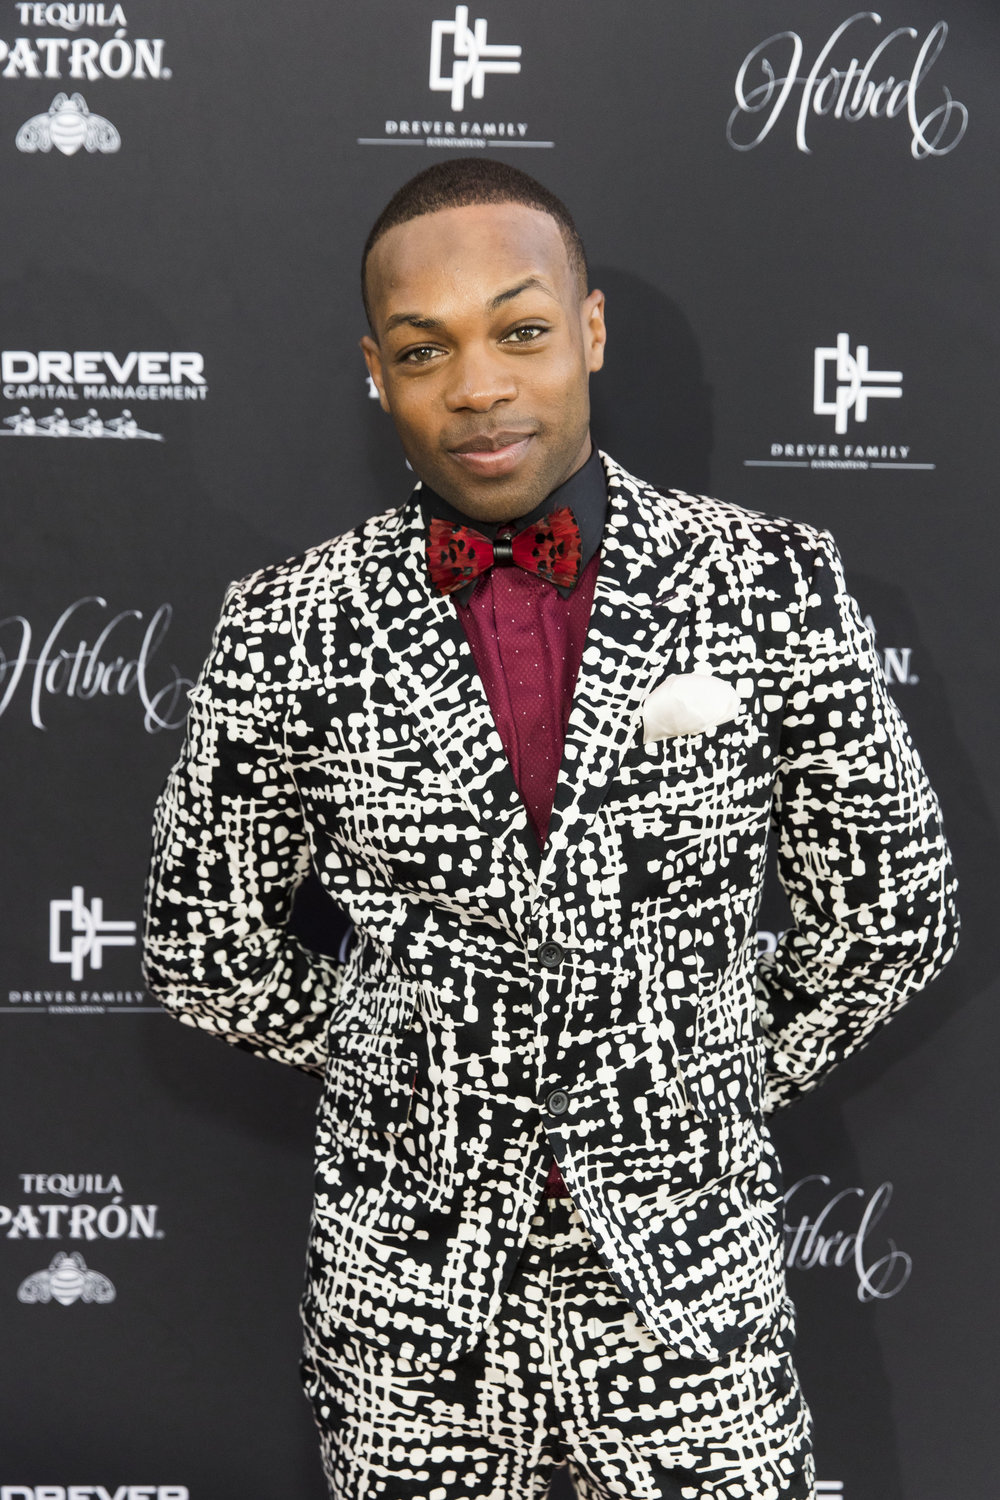 Singer/artist Todrick Hall wearing JAKE; Photo courtesy of Drew Alitzer